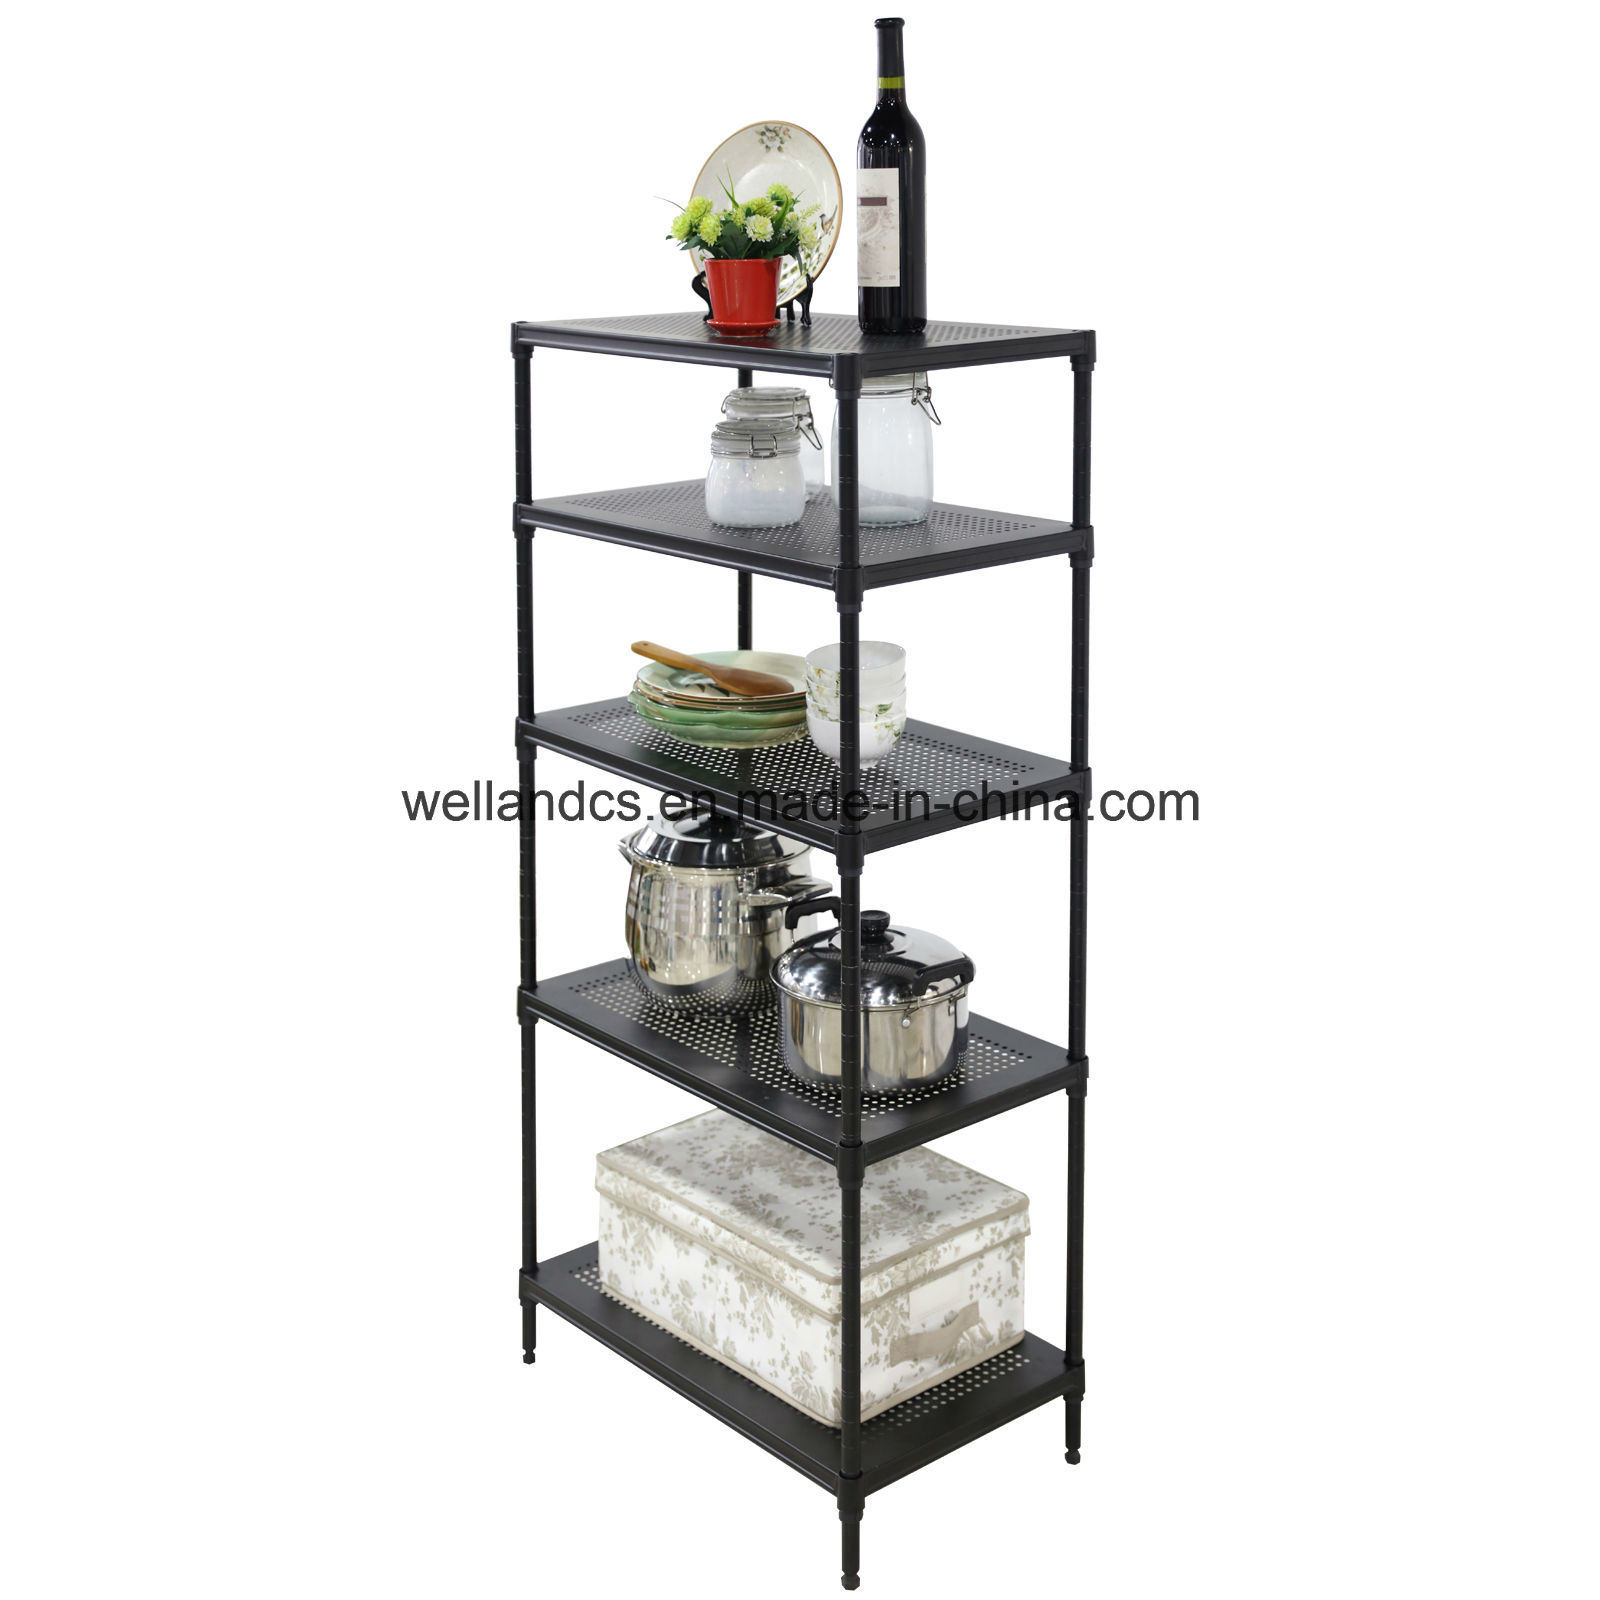 China Perforated 5 Tier Wire Shelving Rack Unit Steel Shelf Storage ...